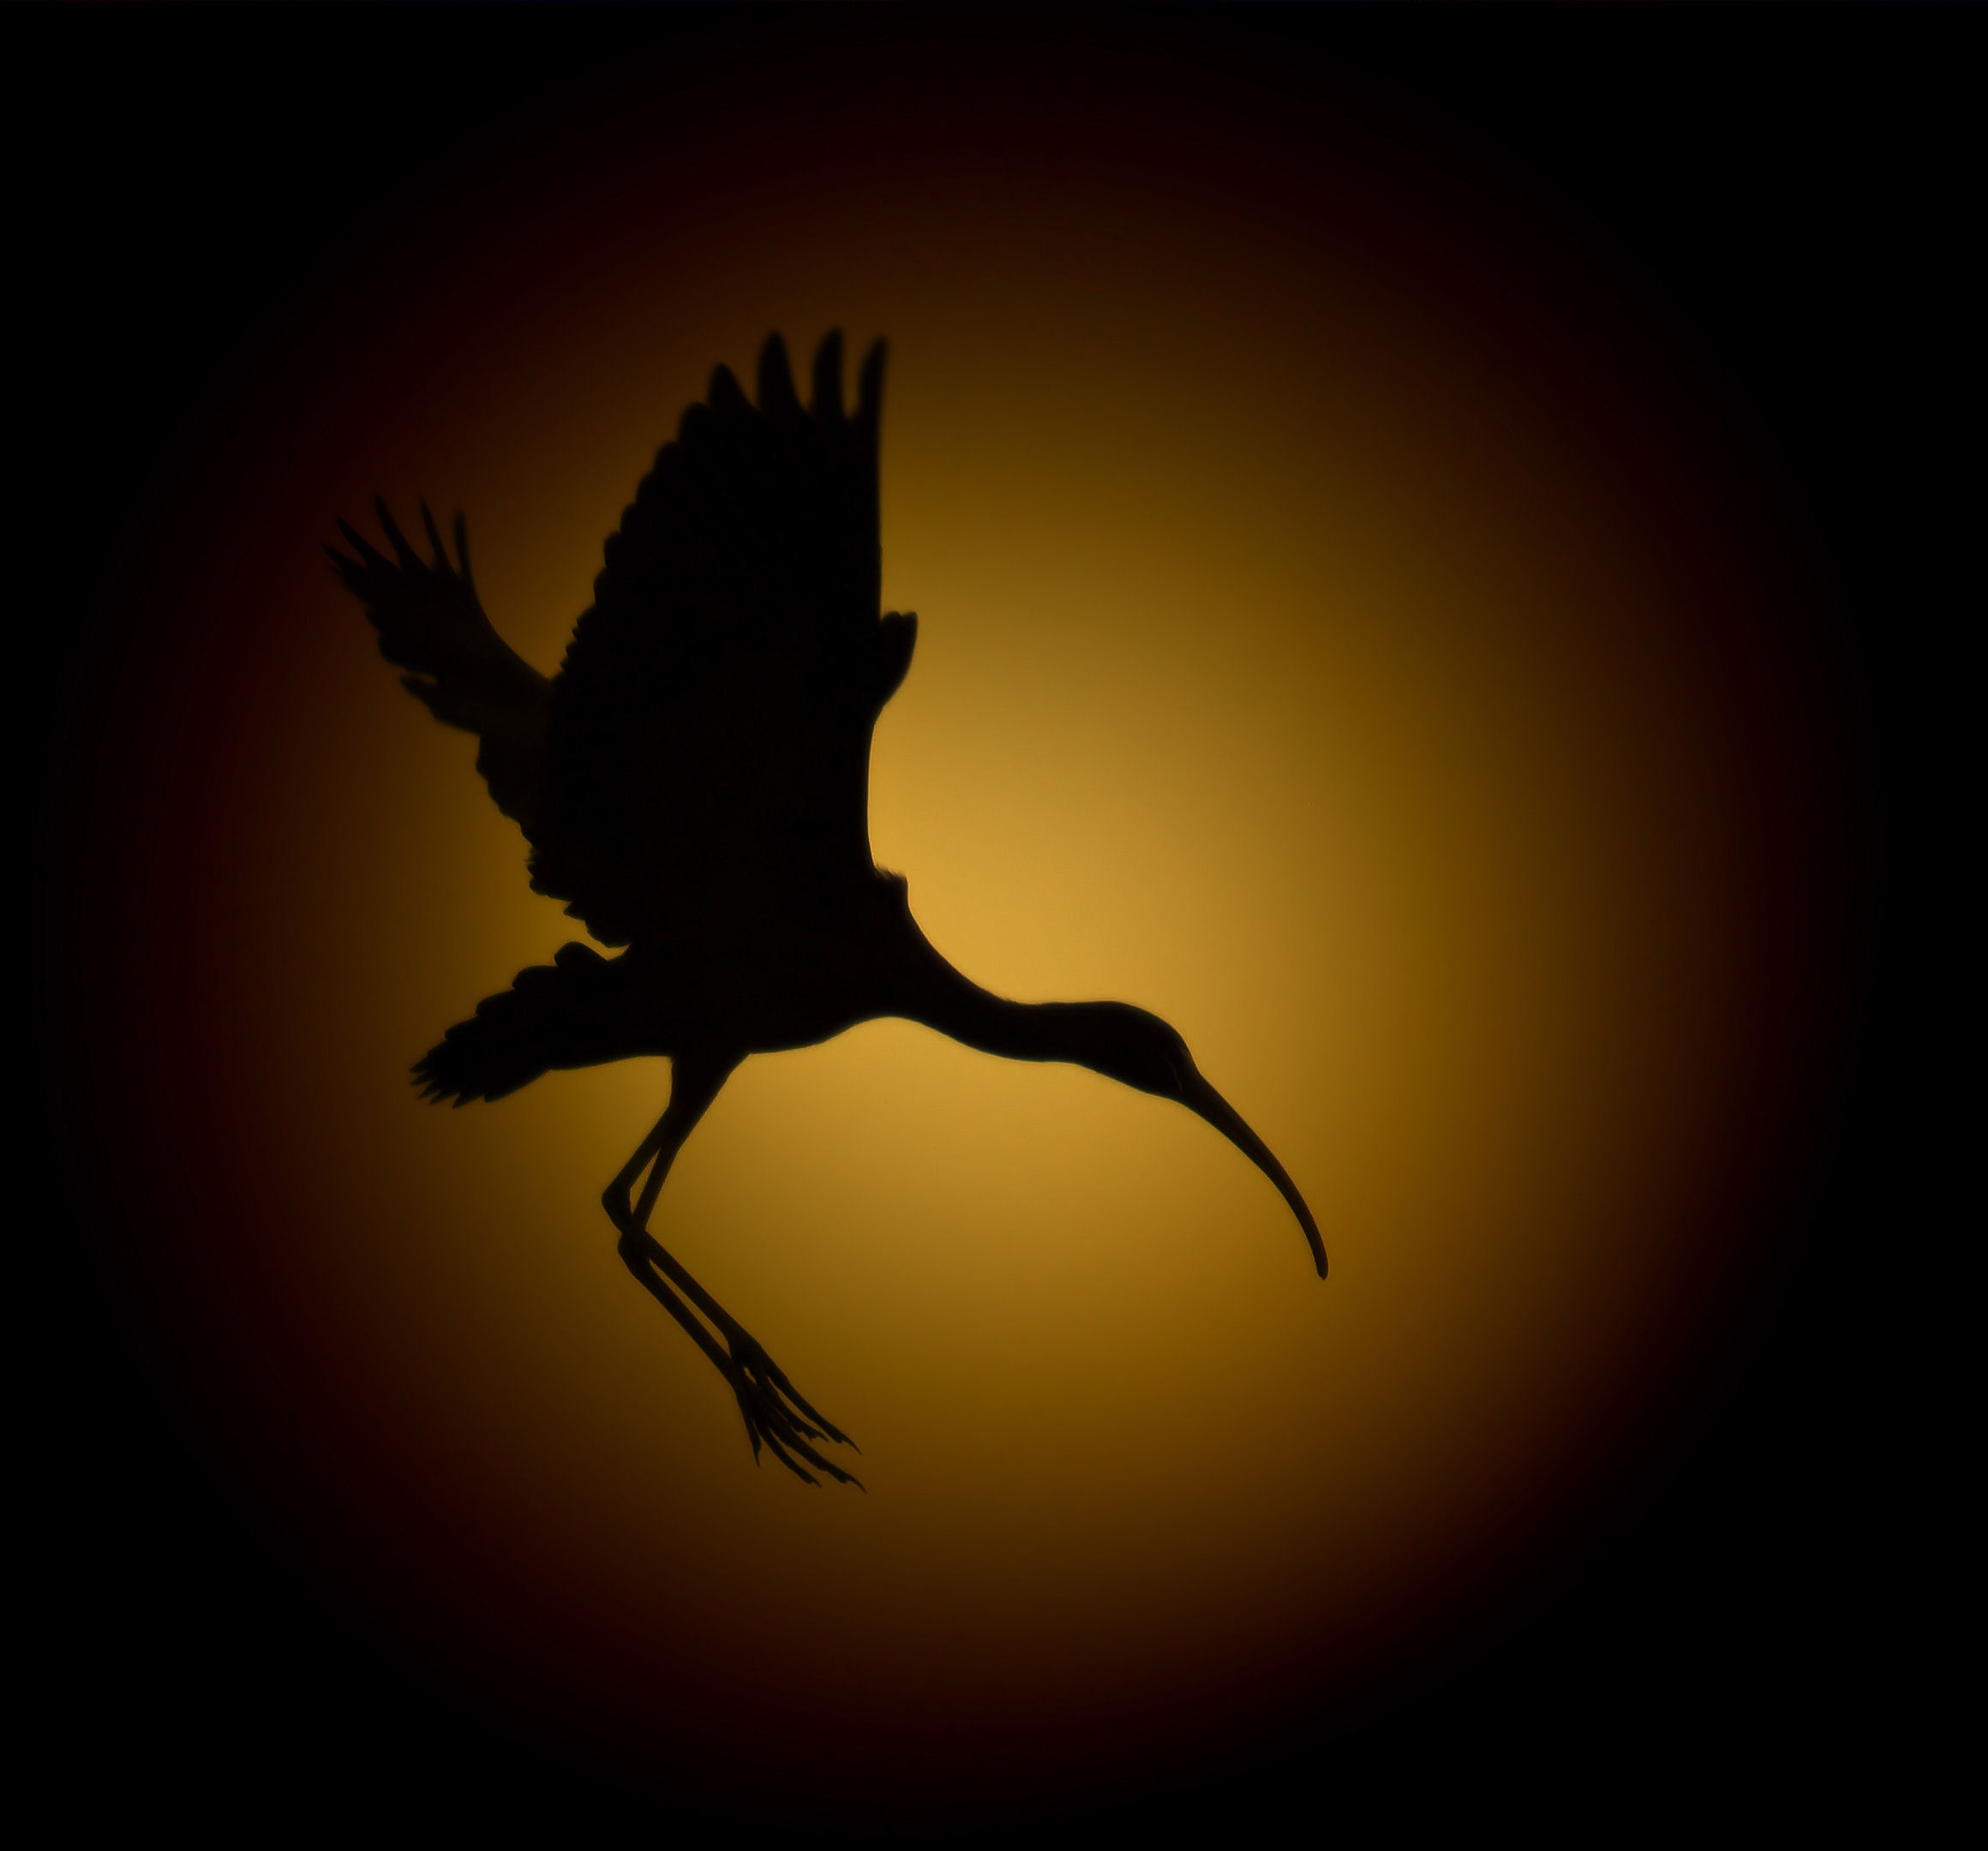 Silhouette, Evening flight of an Ibis